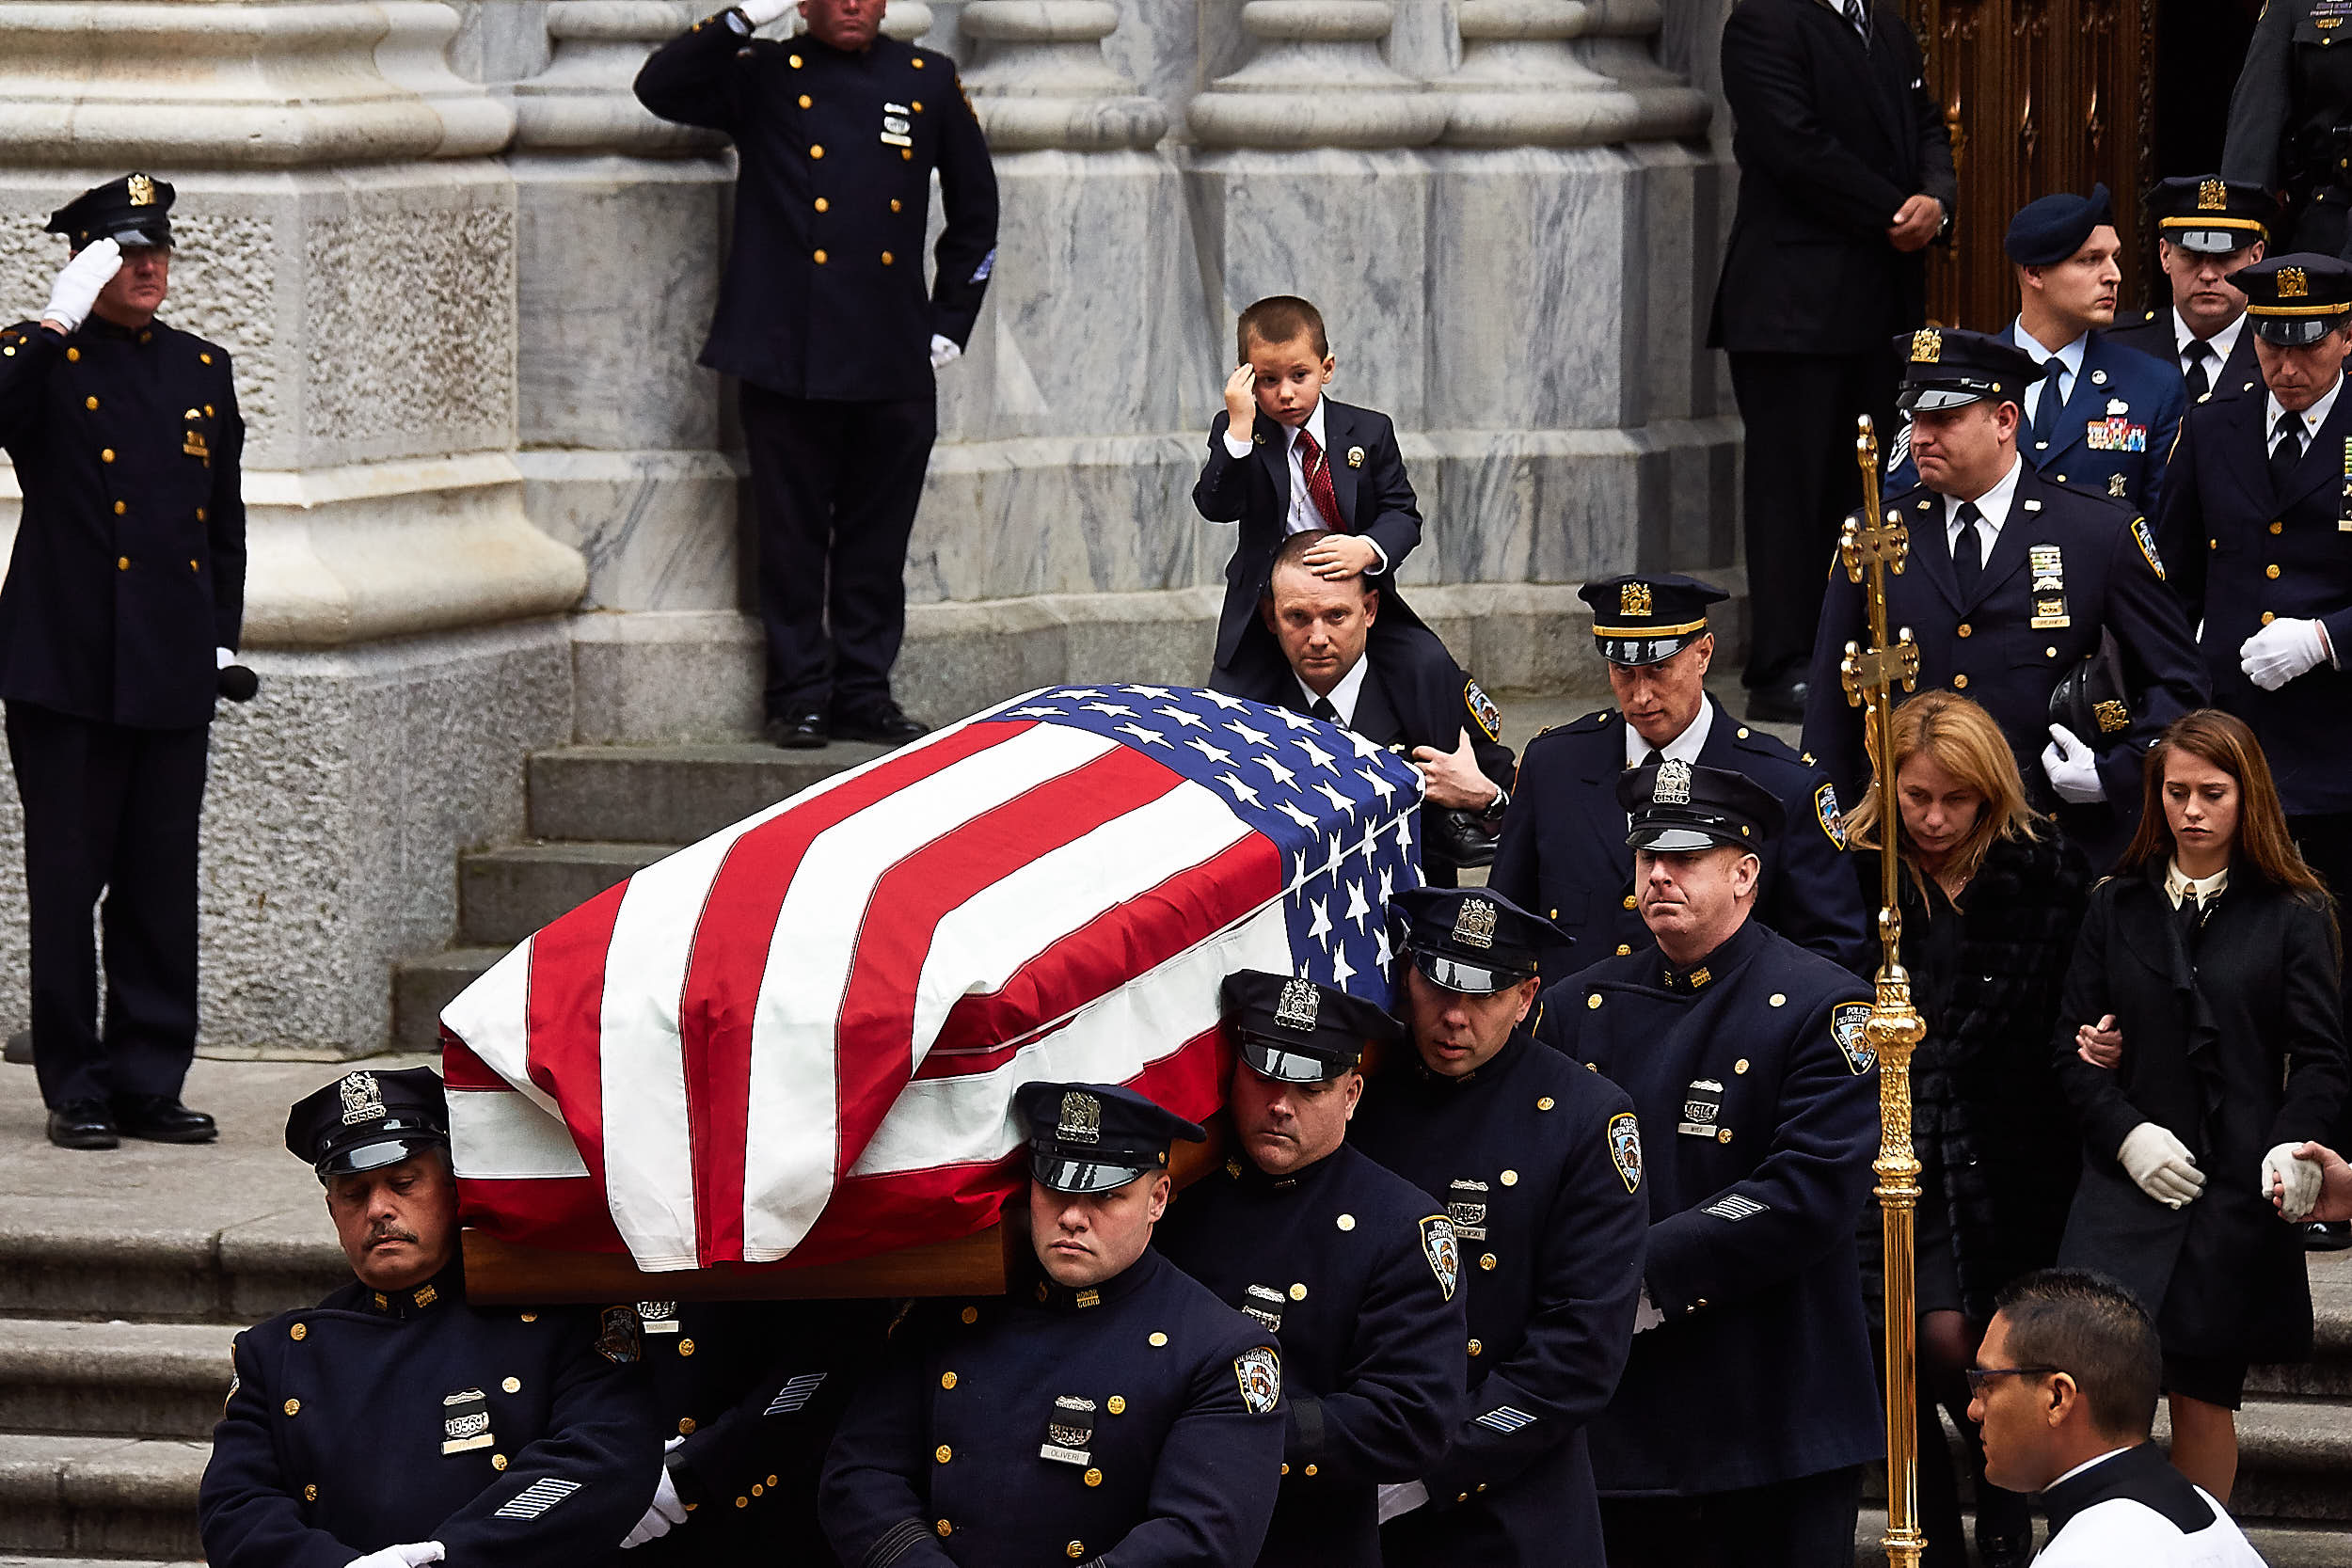 Detective Joseph Lemm's 4-year-old son, Ryan, center, salutes as pall bearers carry his father's casket out of St. Patrick's Cathedral following Lemm's funeral on Wednesday, December 30, 2015 in New York, N.Y.  Detective Lemm was killed along with five other soldiers by a suicide bomber in Afghanistan.